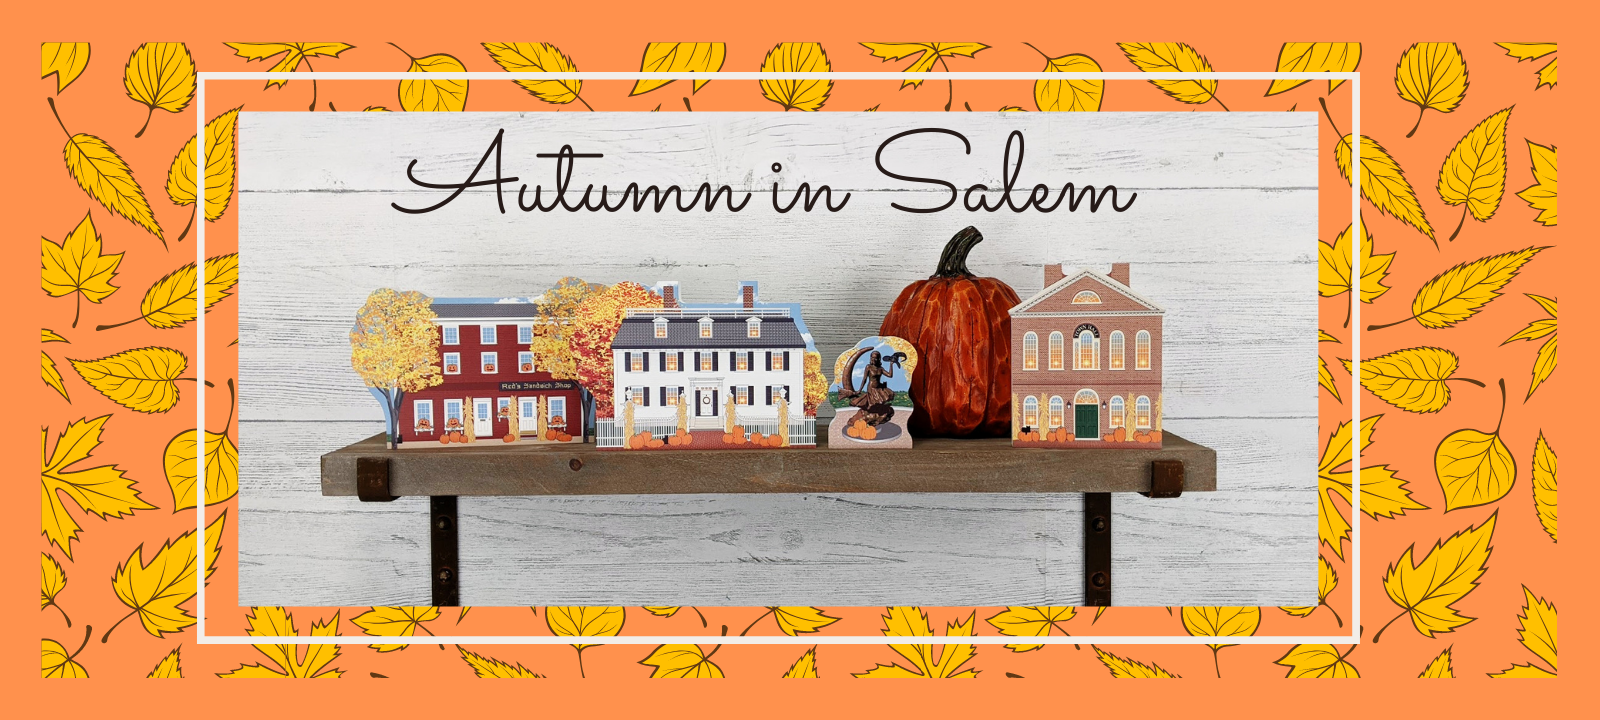 Get your paws on all our Autumn In Salem, Massachusetts collection including buildings from the Hocus Pocus movie.